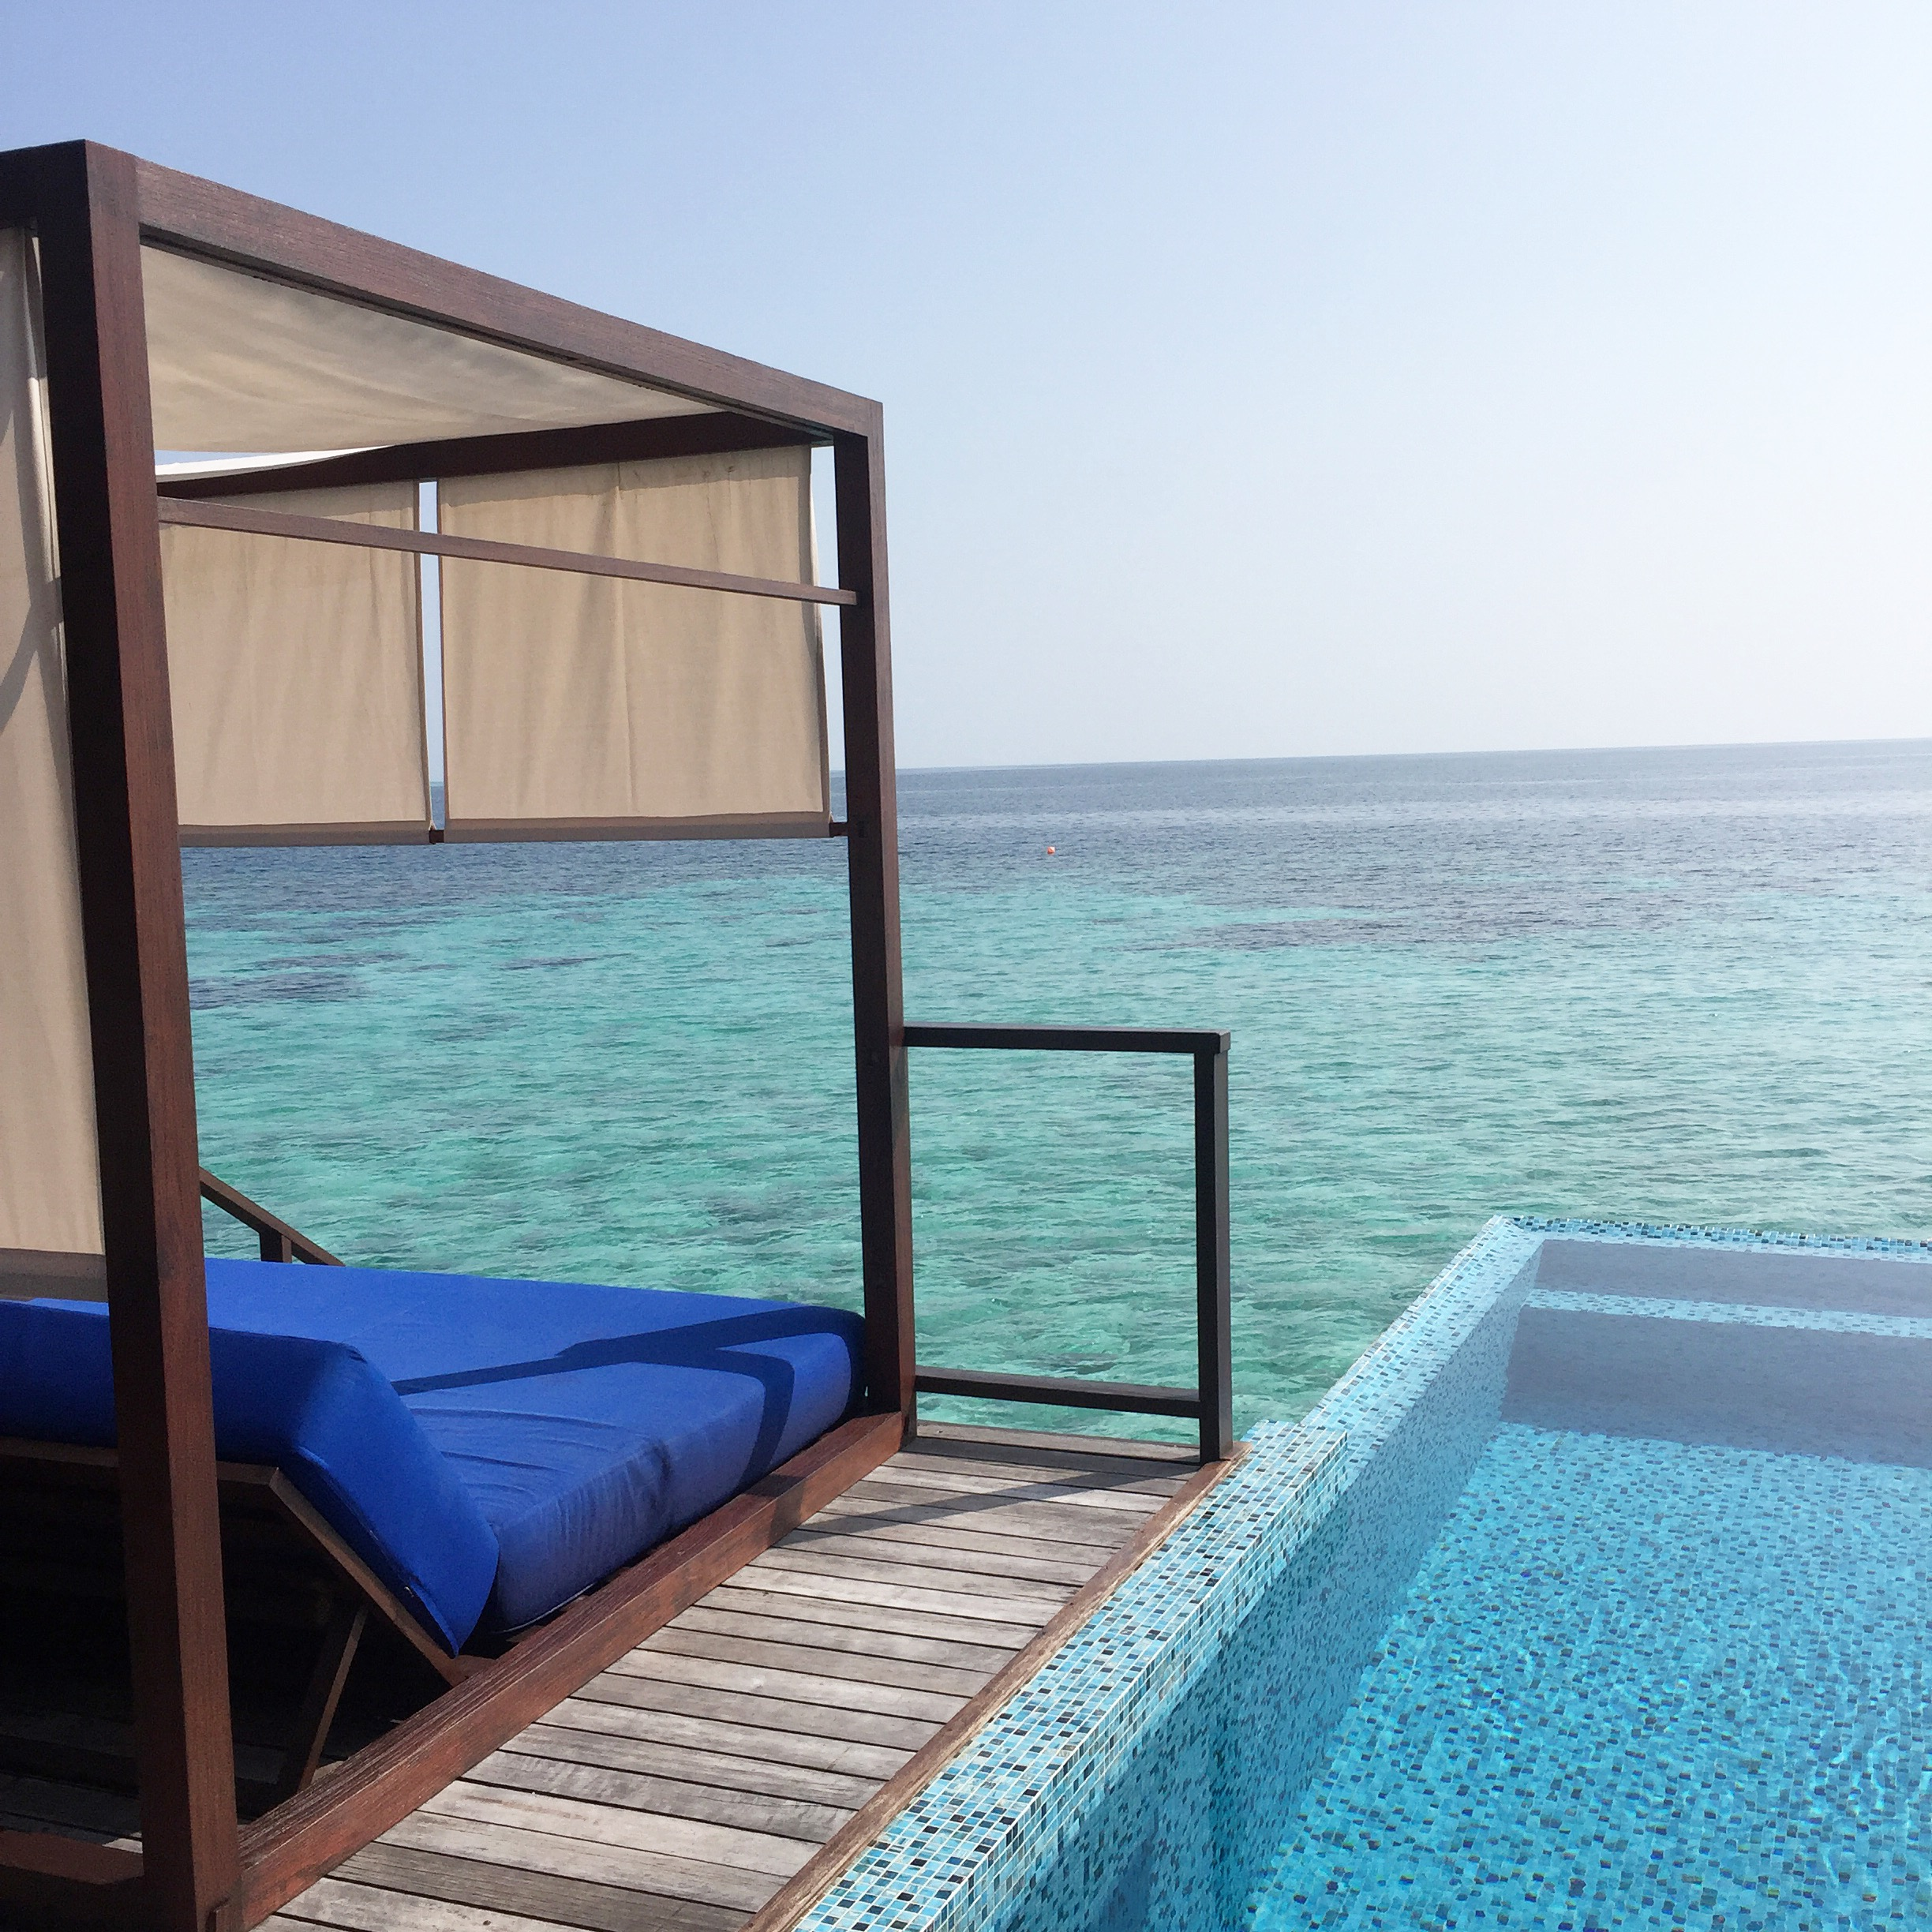 Rachel recommends: Maldives review